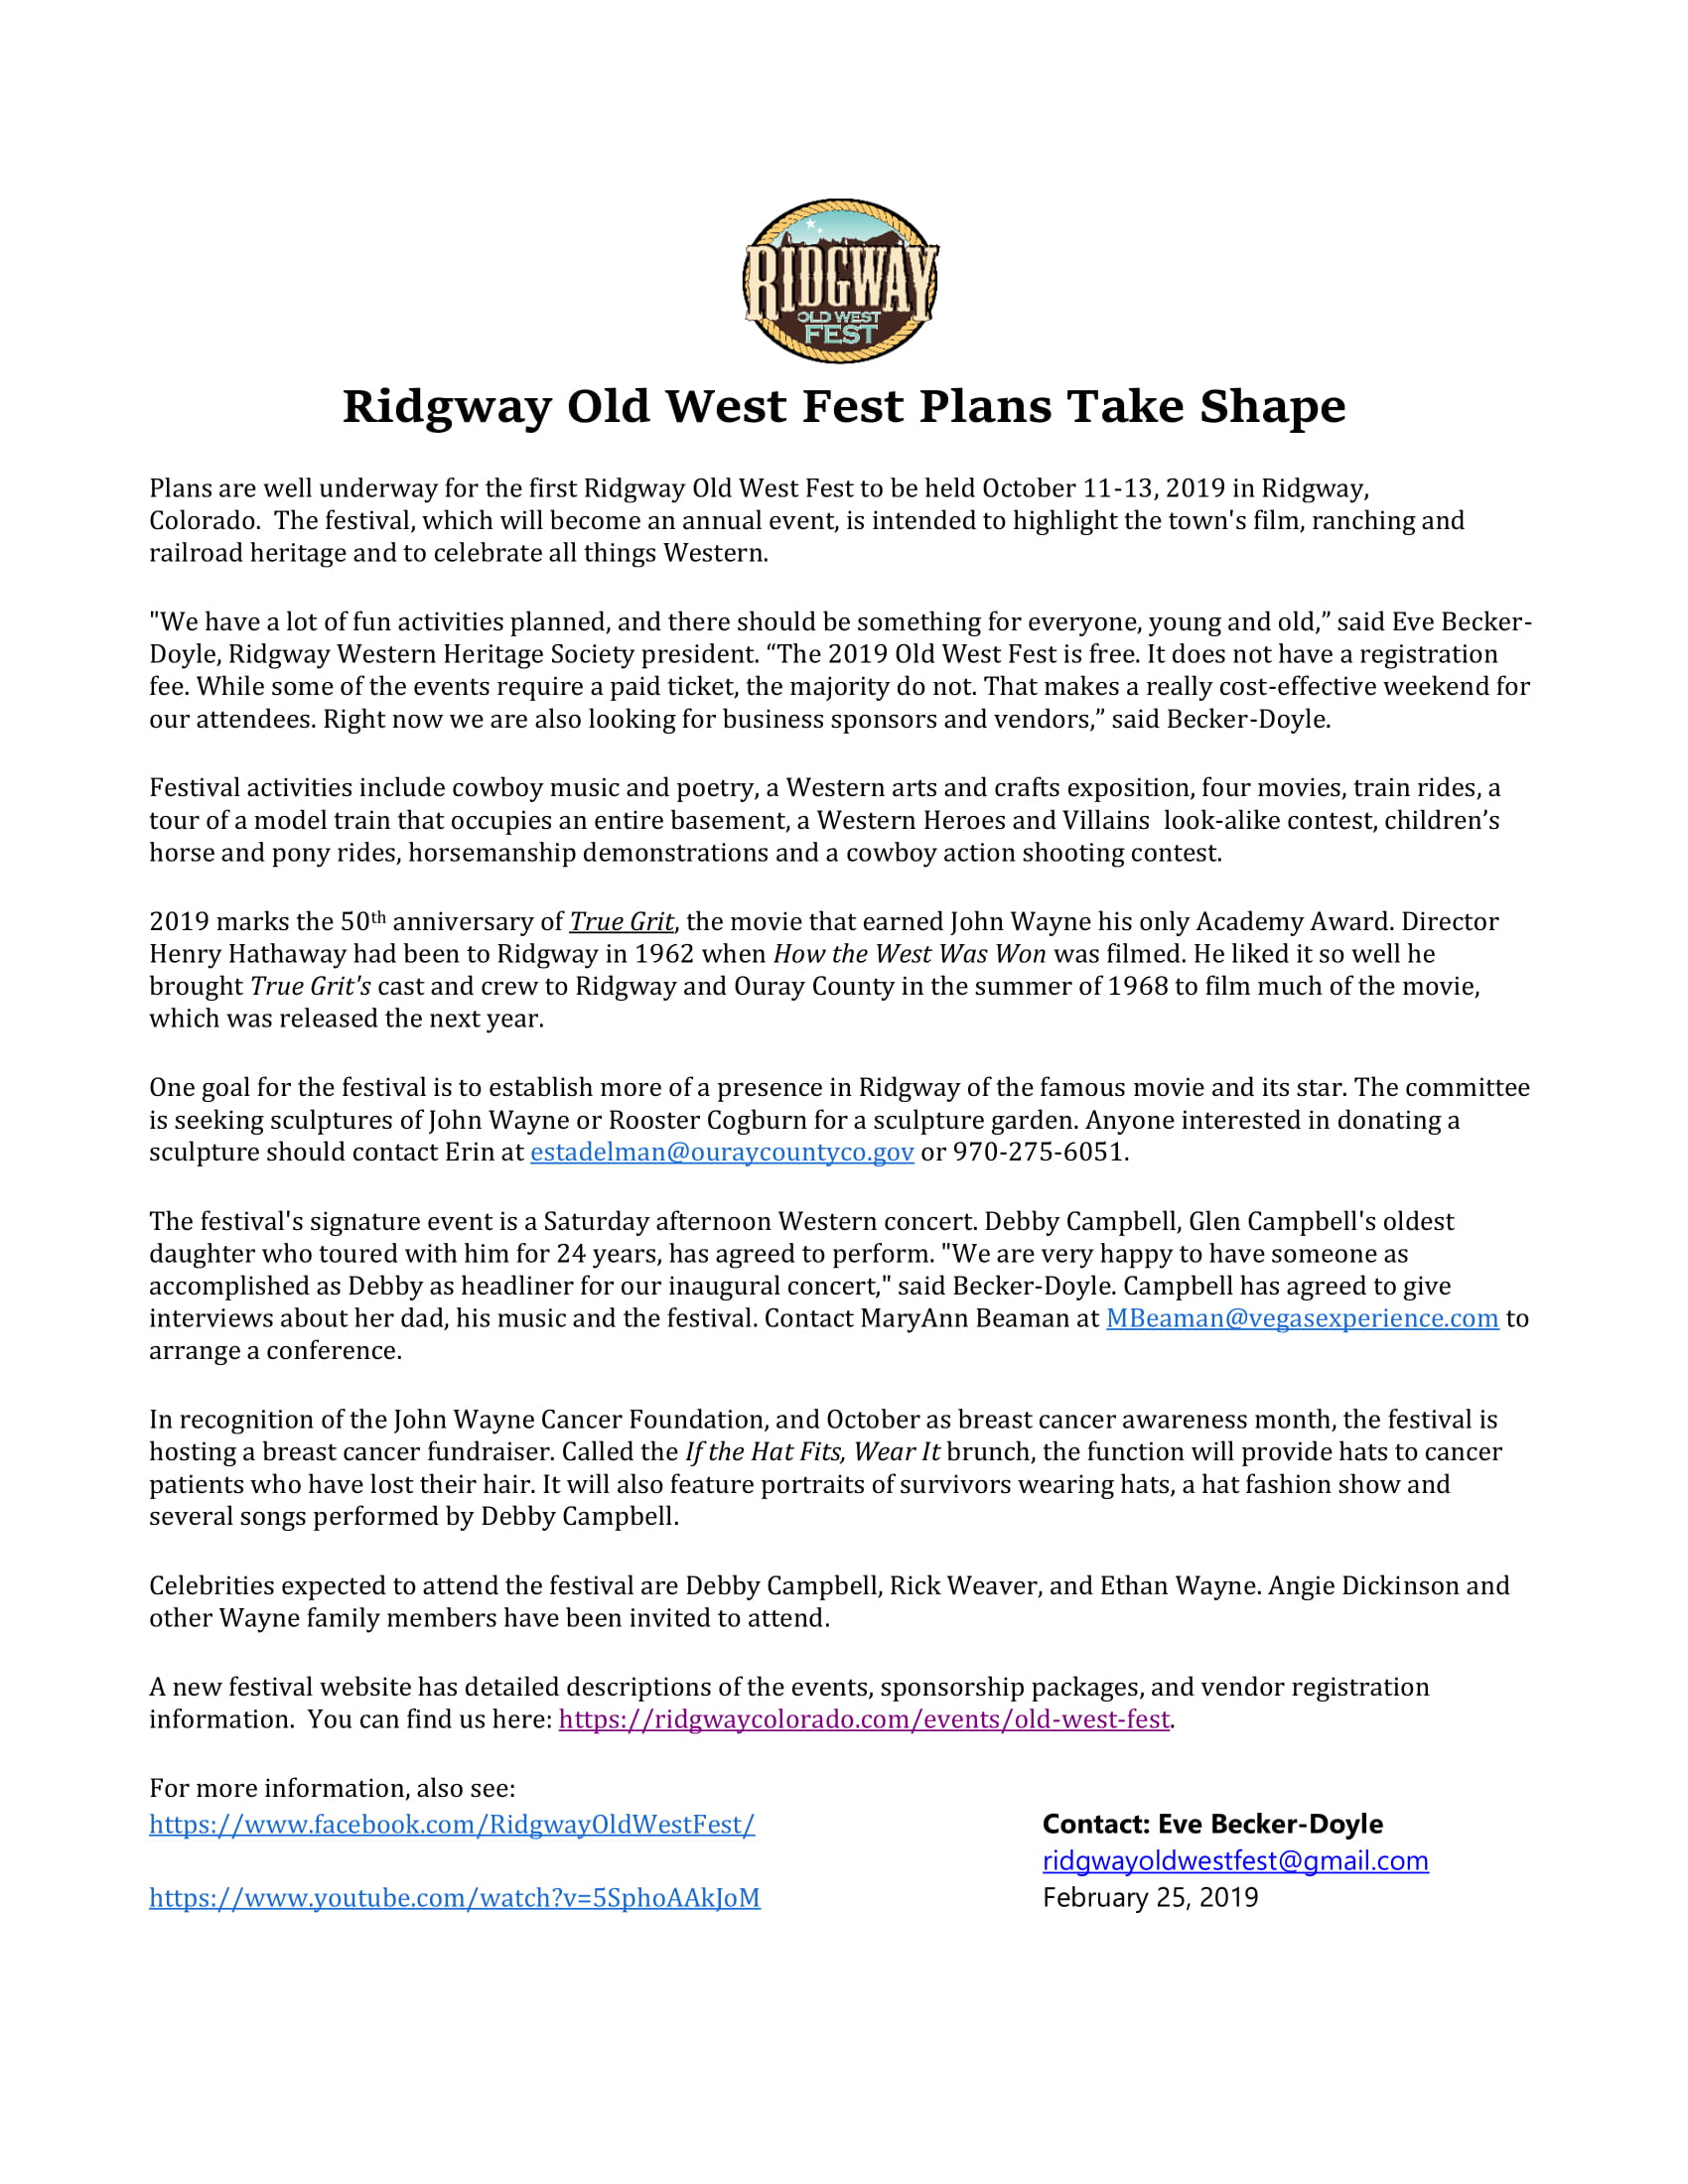 Ridgway Old West Fest Press Release - Feb 2019-1.jpg